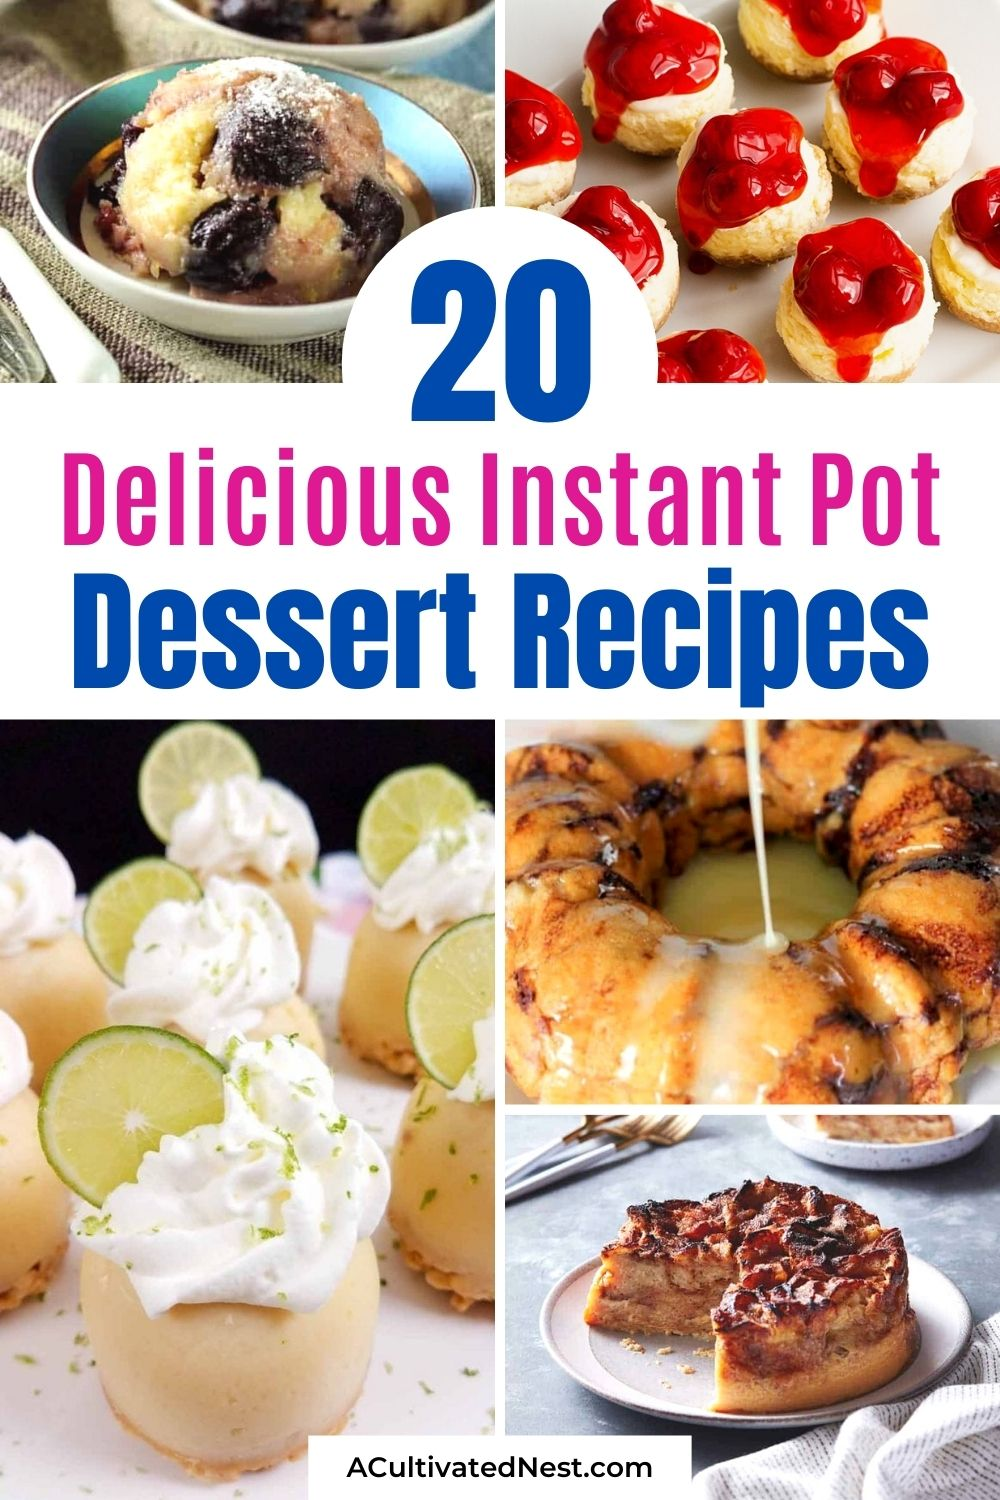 20 Instant Pot Dessert Recipes- These delicious Instant Pot dessert recipes are perfect for gatherings, or just for afternoon snacks! And not only are they super tasty, but they're very easy to make, too! | pressure cooker desserts, #desserts #dessertRecipe #instantPotRecipes #pressureCookerRecipes #ACultivatedNest